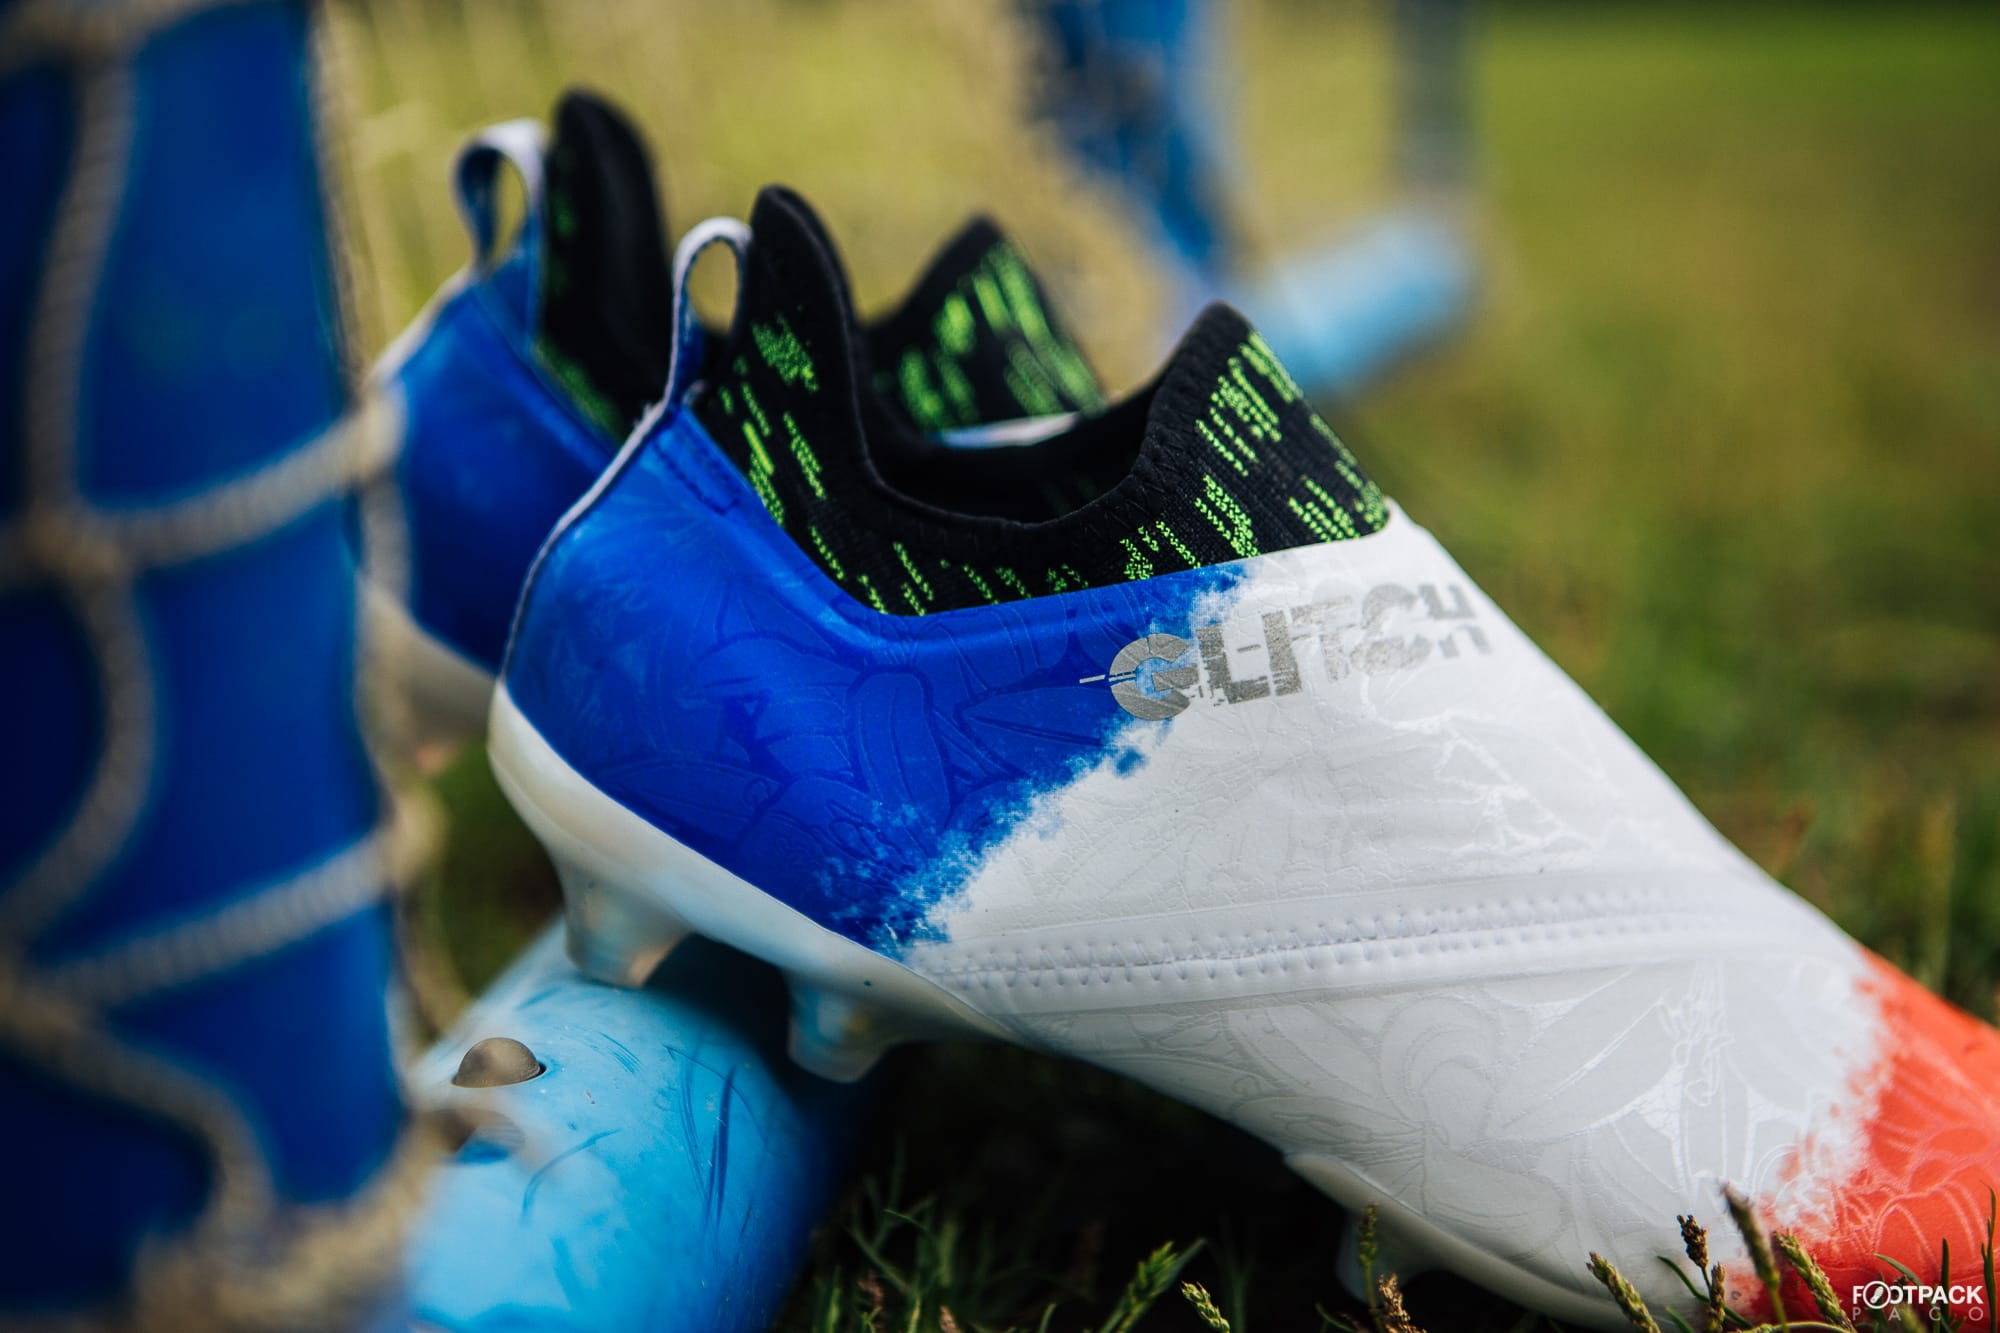 Chaussures-football-adidas-glitch-18-2-0-Worldskin-France-Coupe-Monde-Juin-2018-13